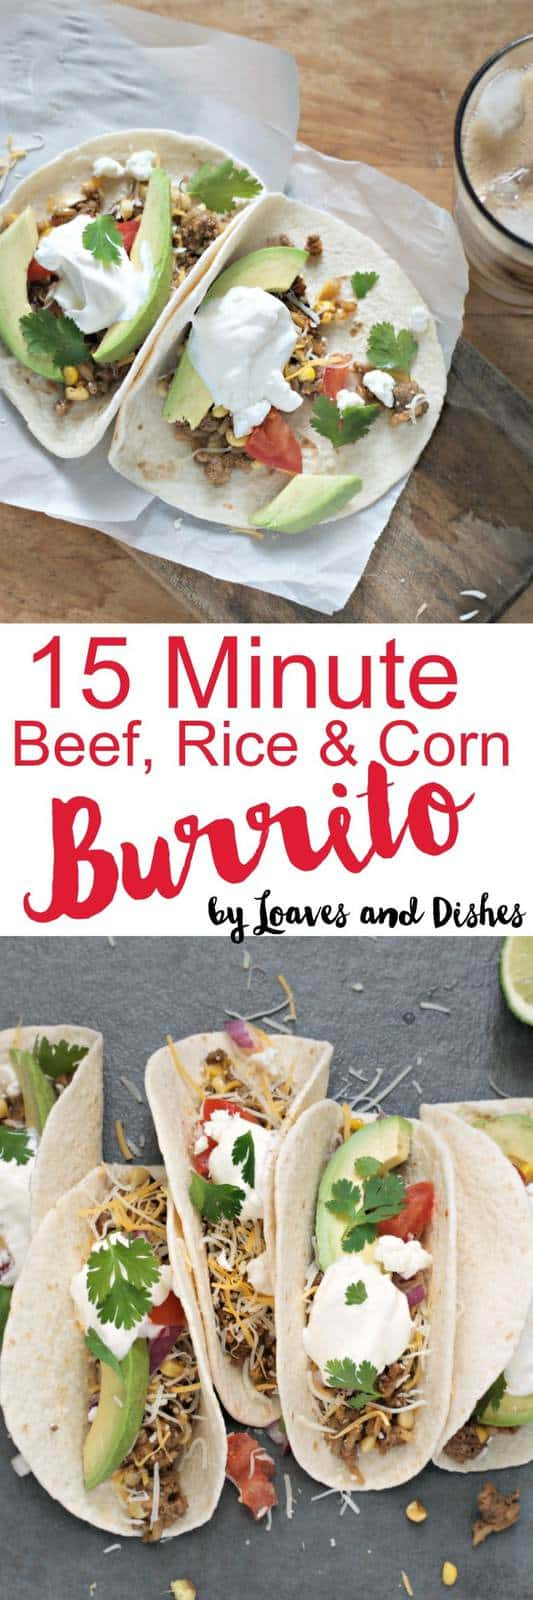 Easy Beef Rice and Corn Burrito - ready in 15 minutes. Could be made into a beef burrito bowl. Smothered in your favorite toppings #ad #SunshineSweetCorn #IC